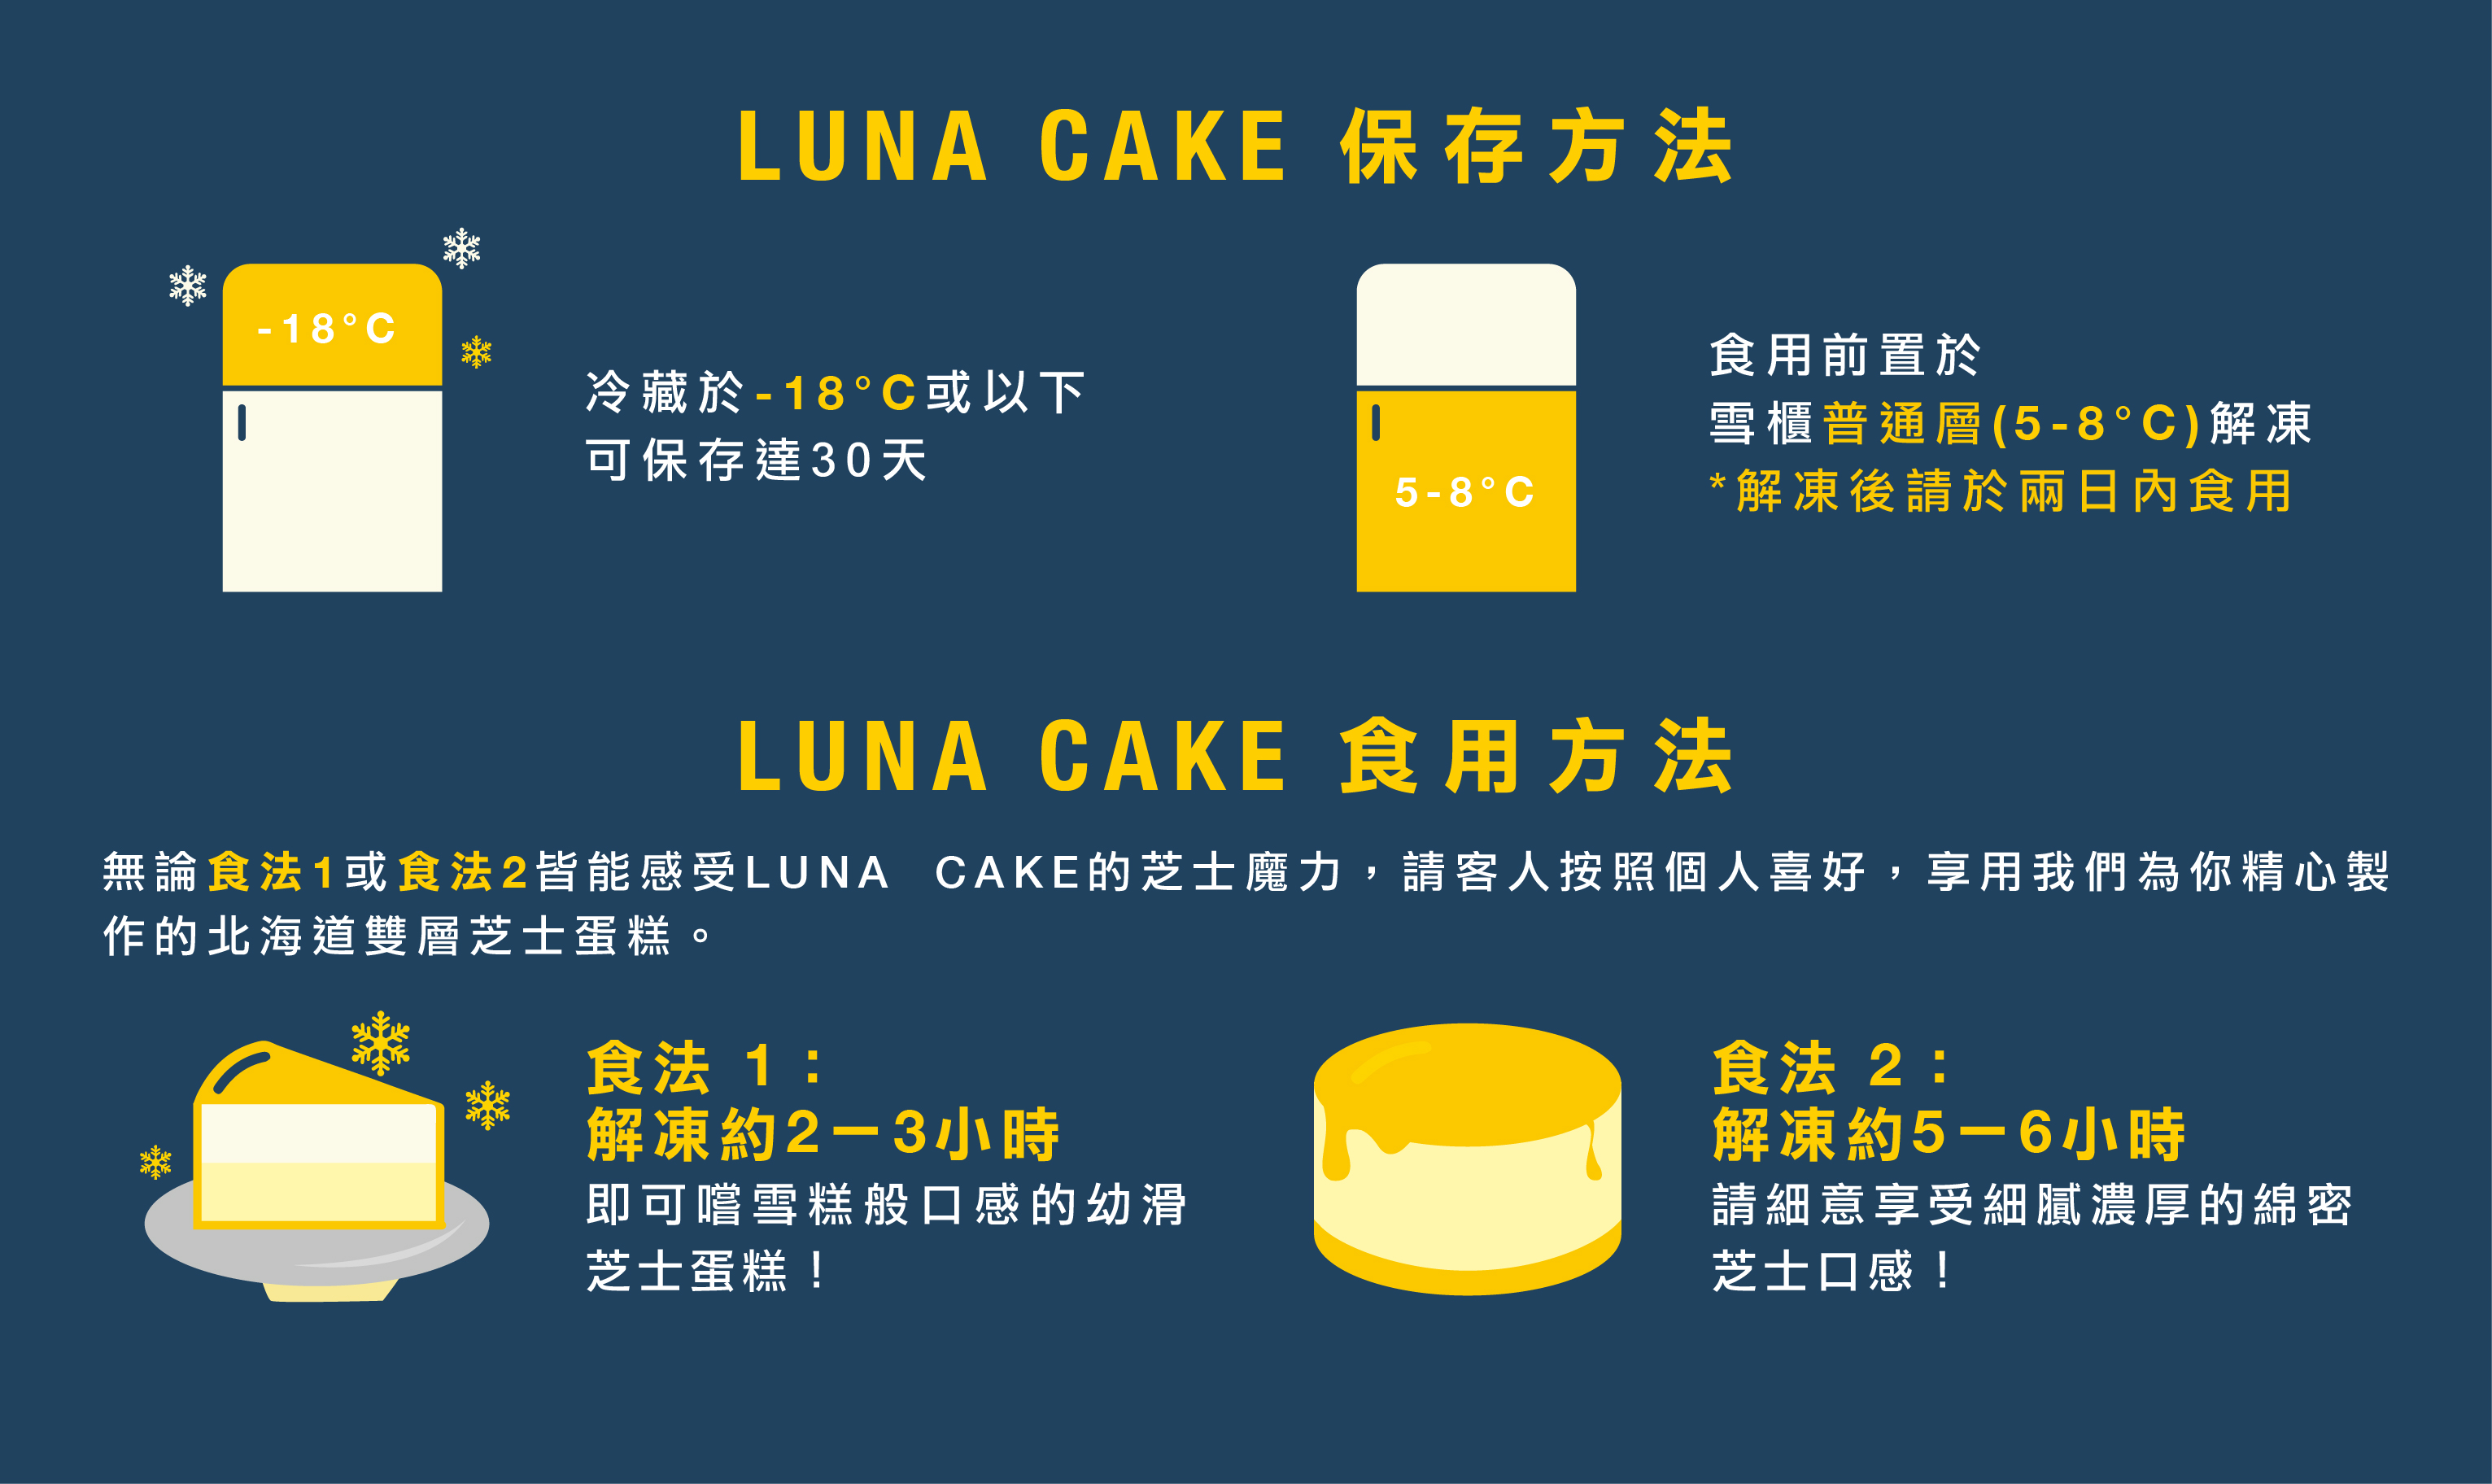 lunacake-website-method-20201019-02-aw-01.jpg